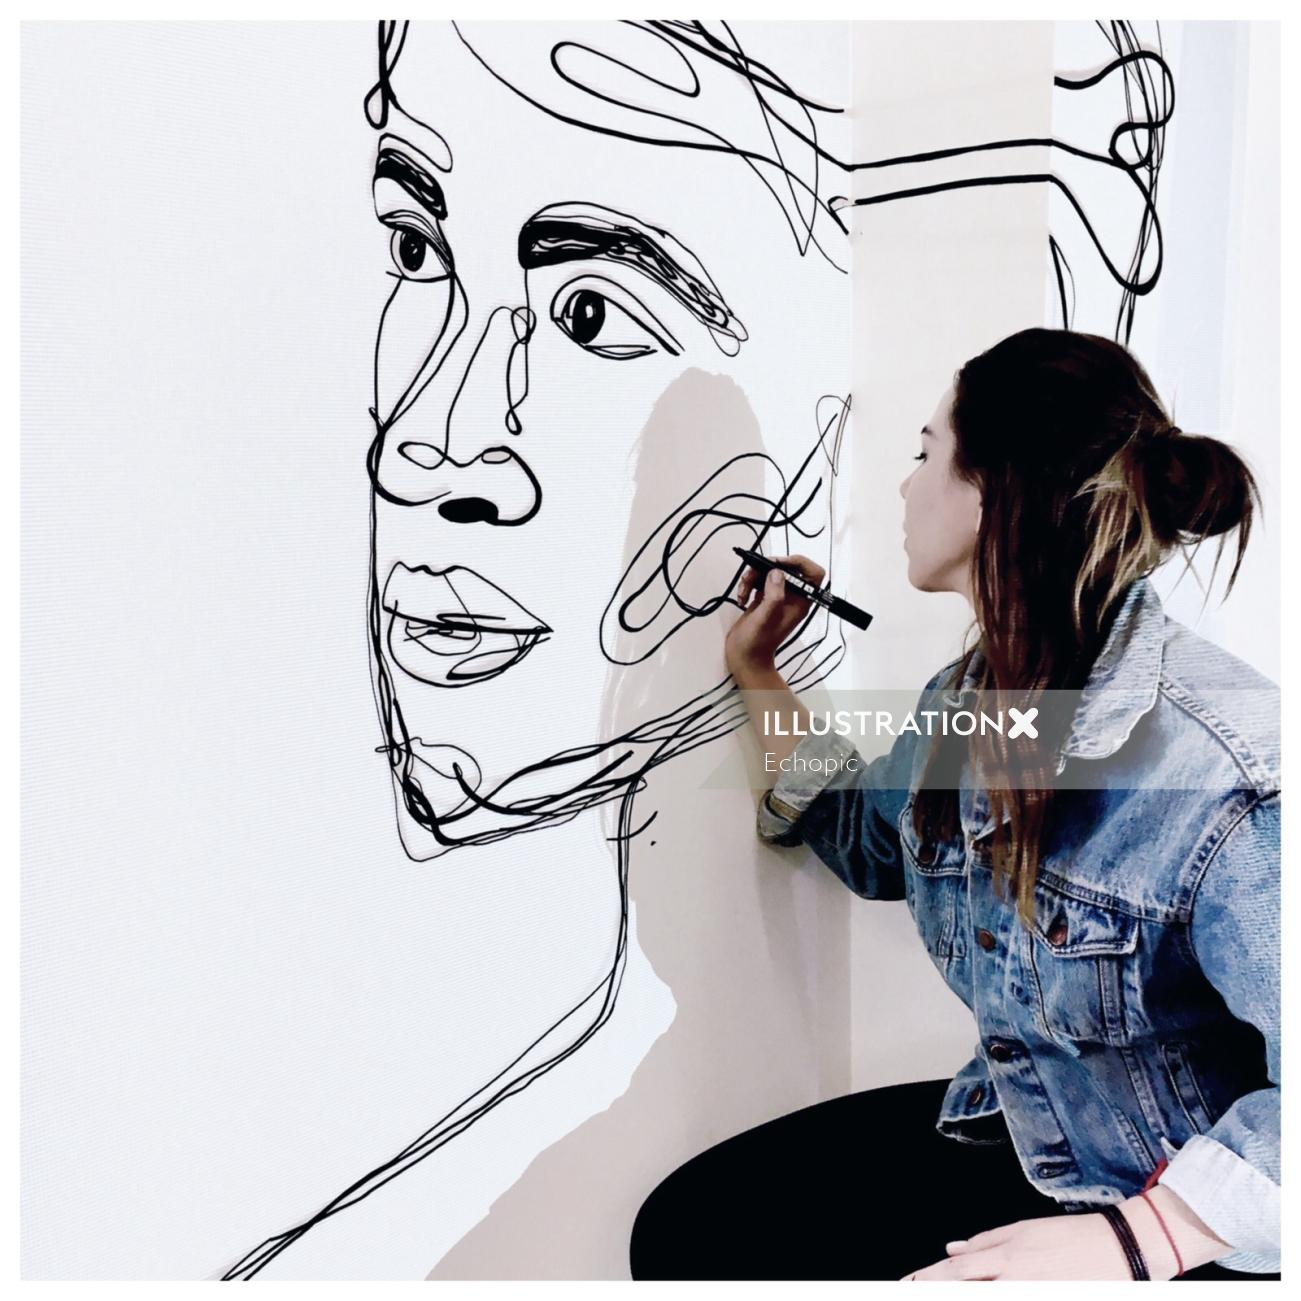 Live event drawing of face portrait